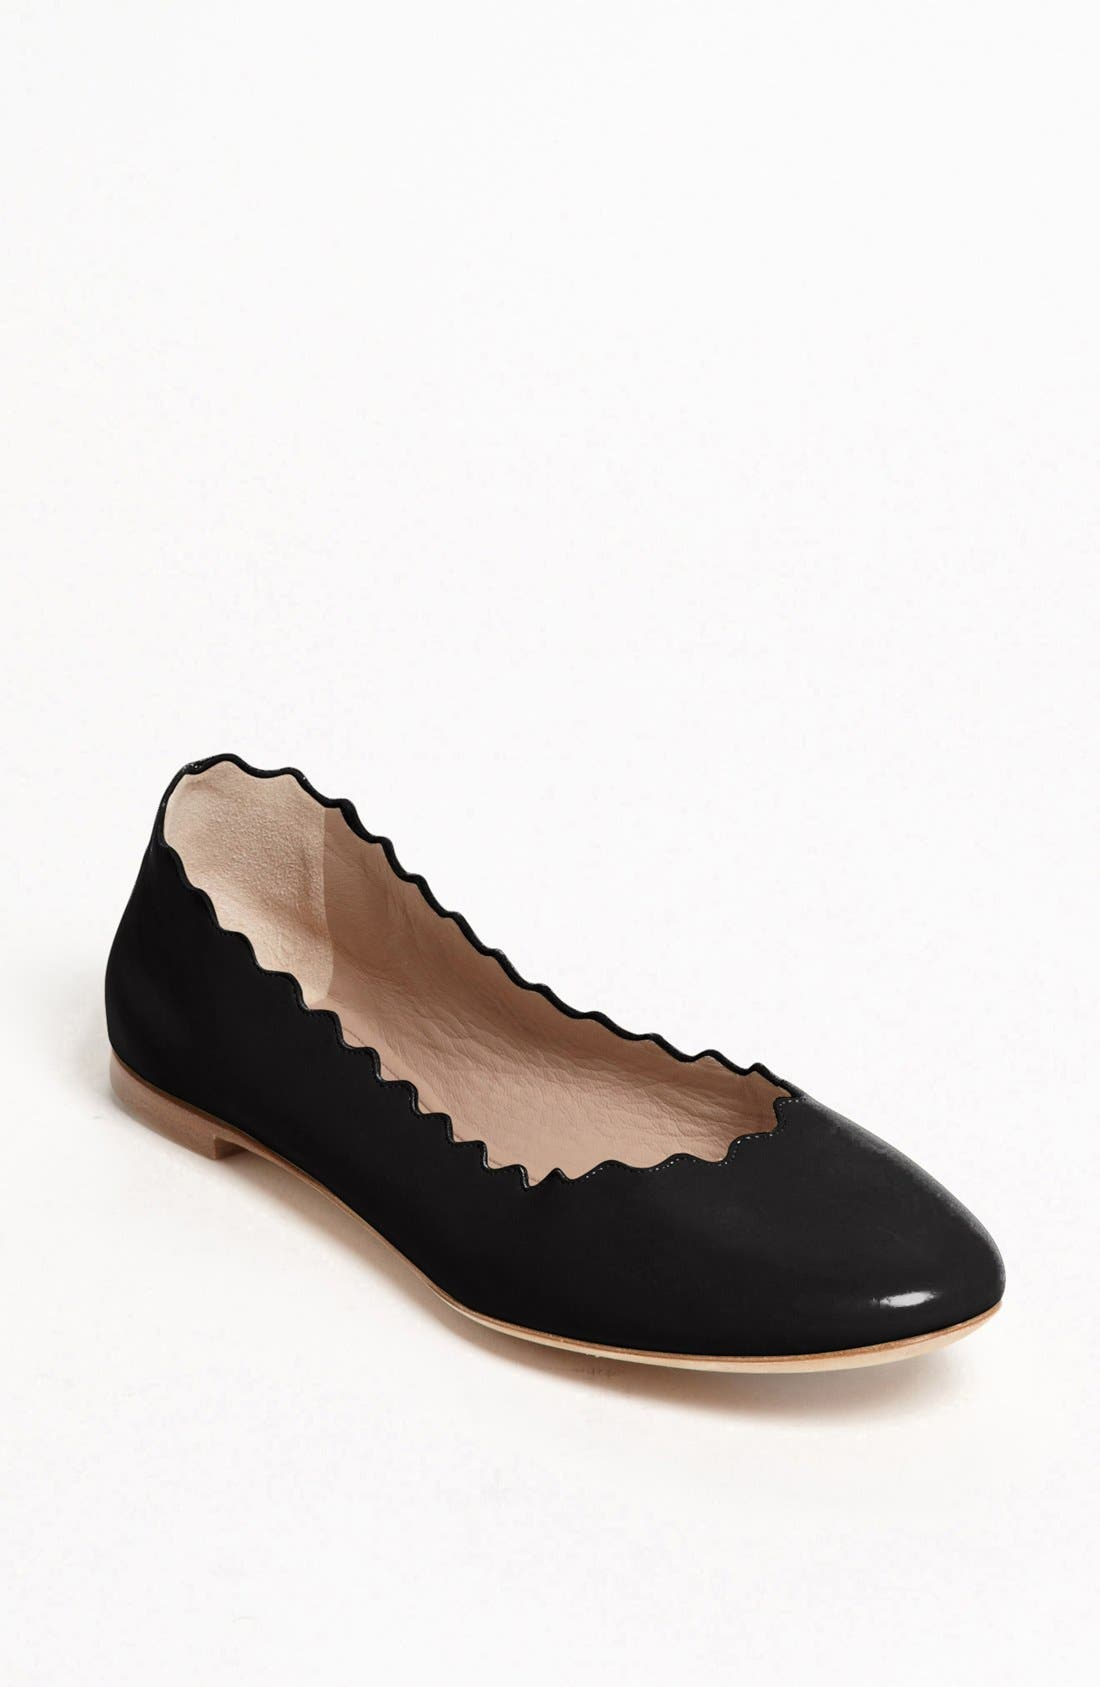 Alternate Image 1 Selected - Chloé 'Lauren' Ballerina Flat